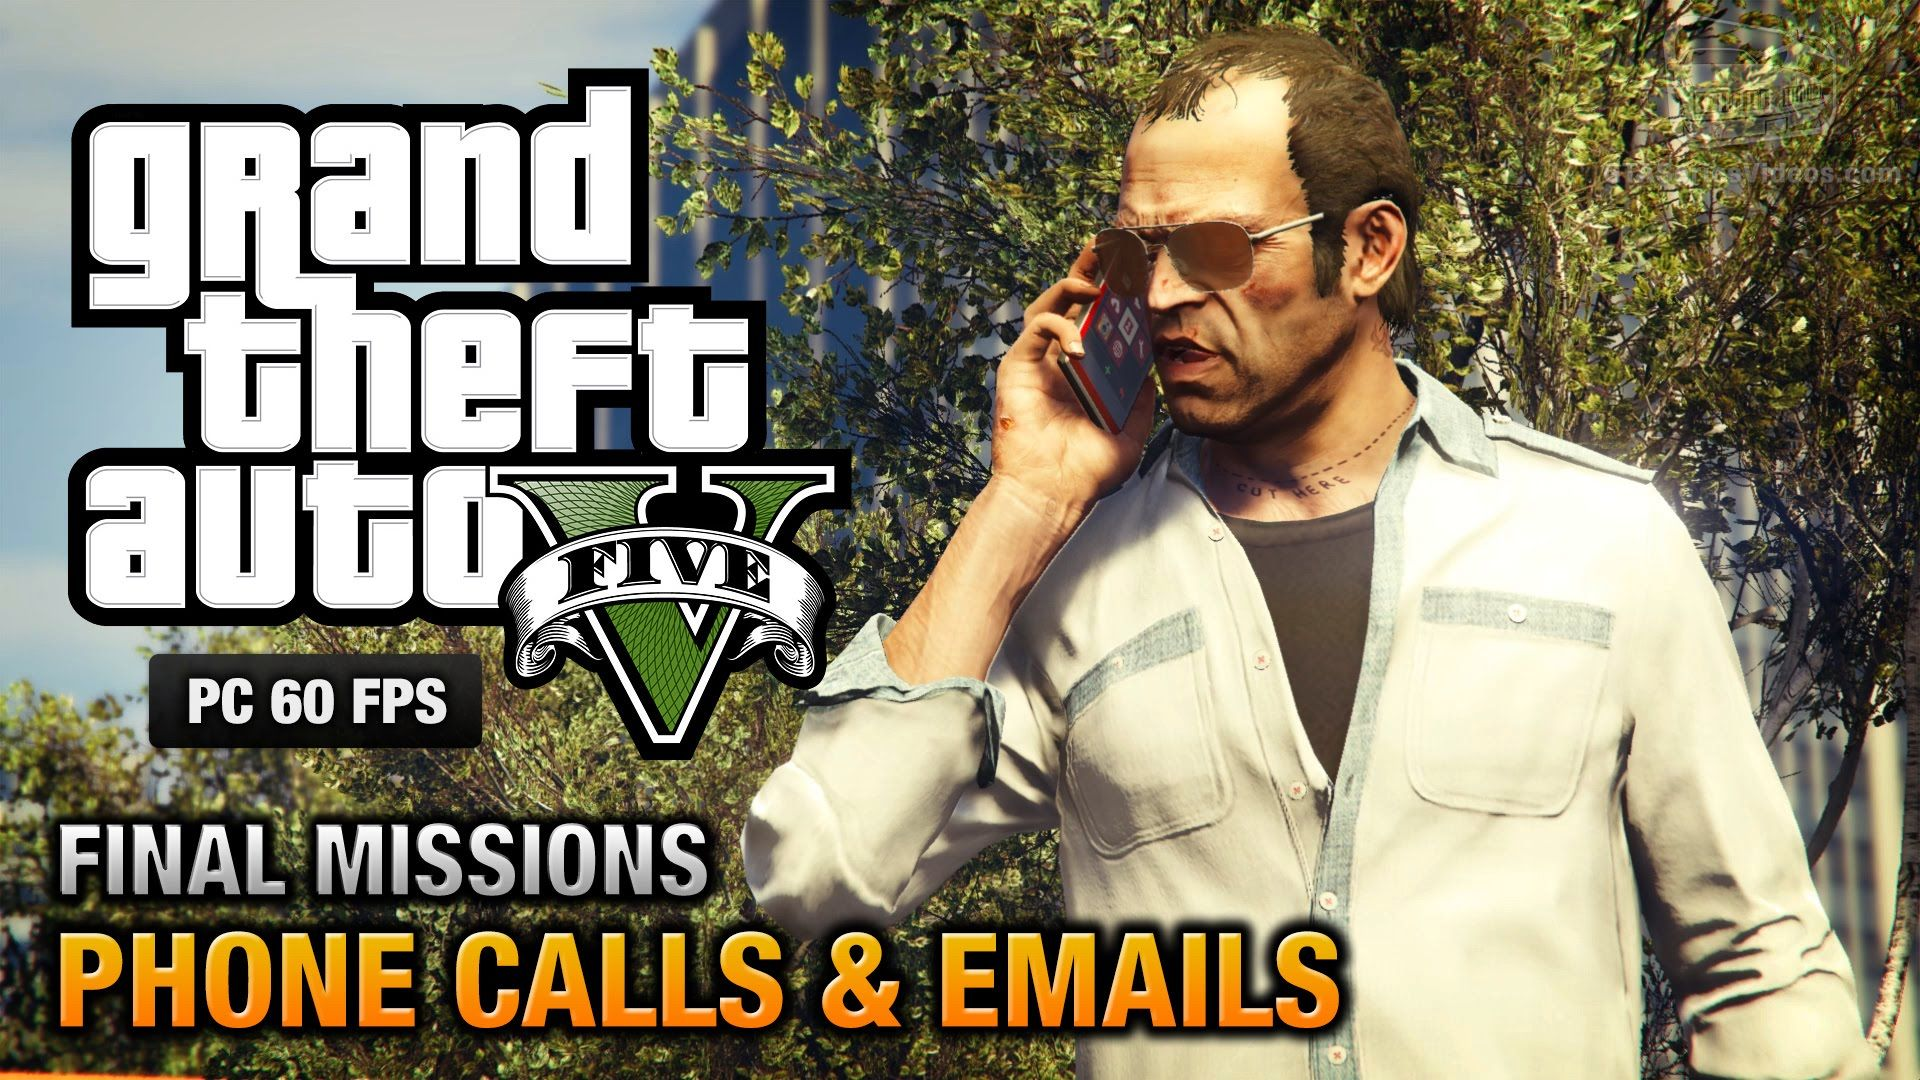 Gta 5 Pc Phone Calls Emails After Final Missions Grand Theft Auto Grand Theft Auto Series Adventure Video Game